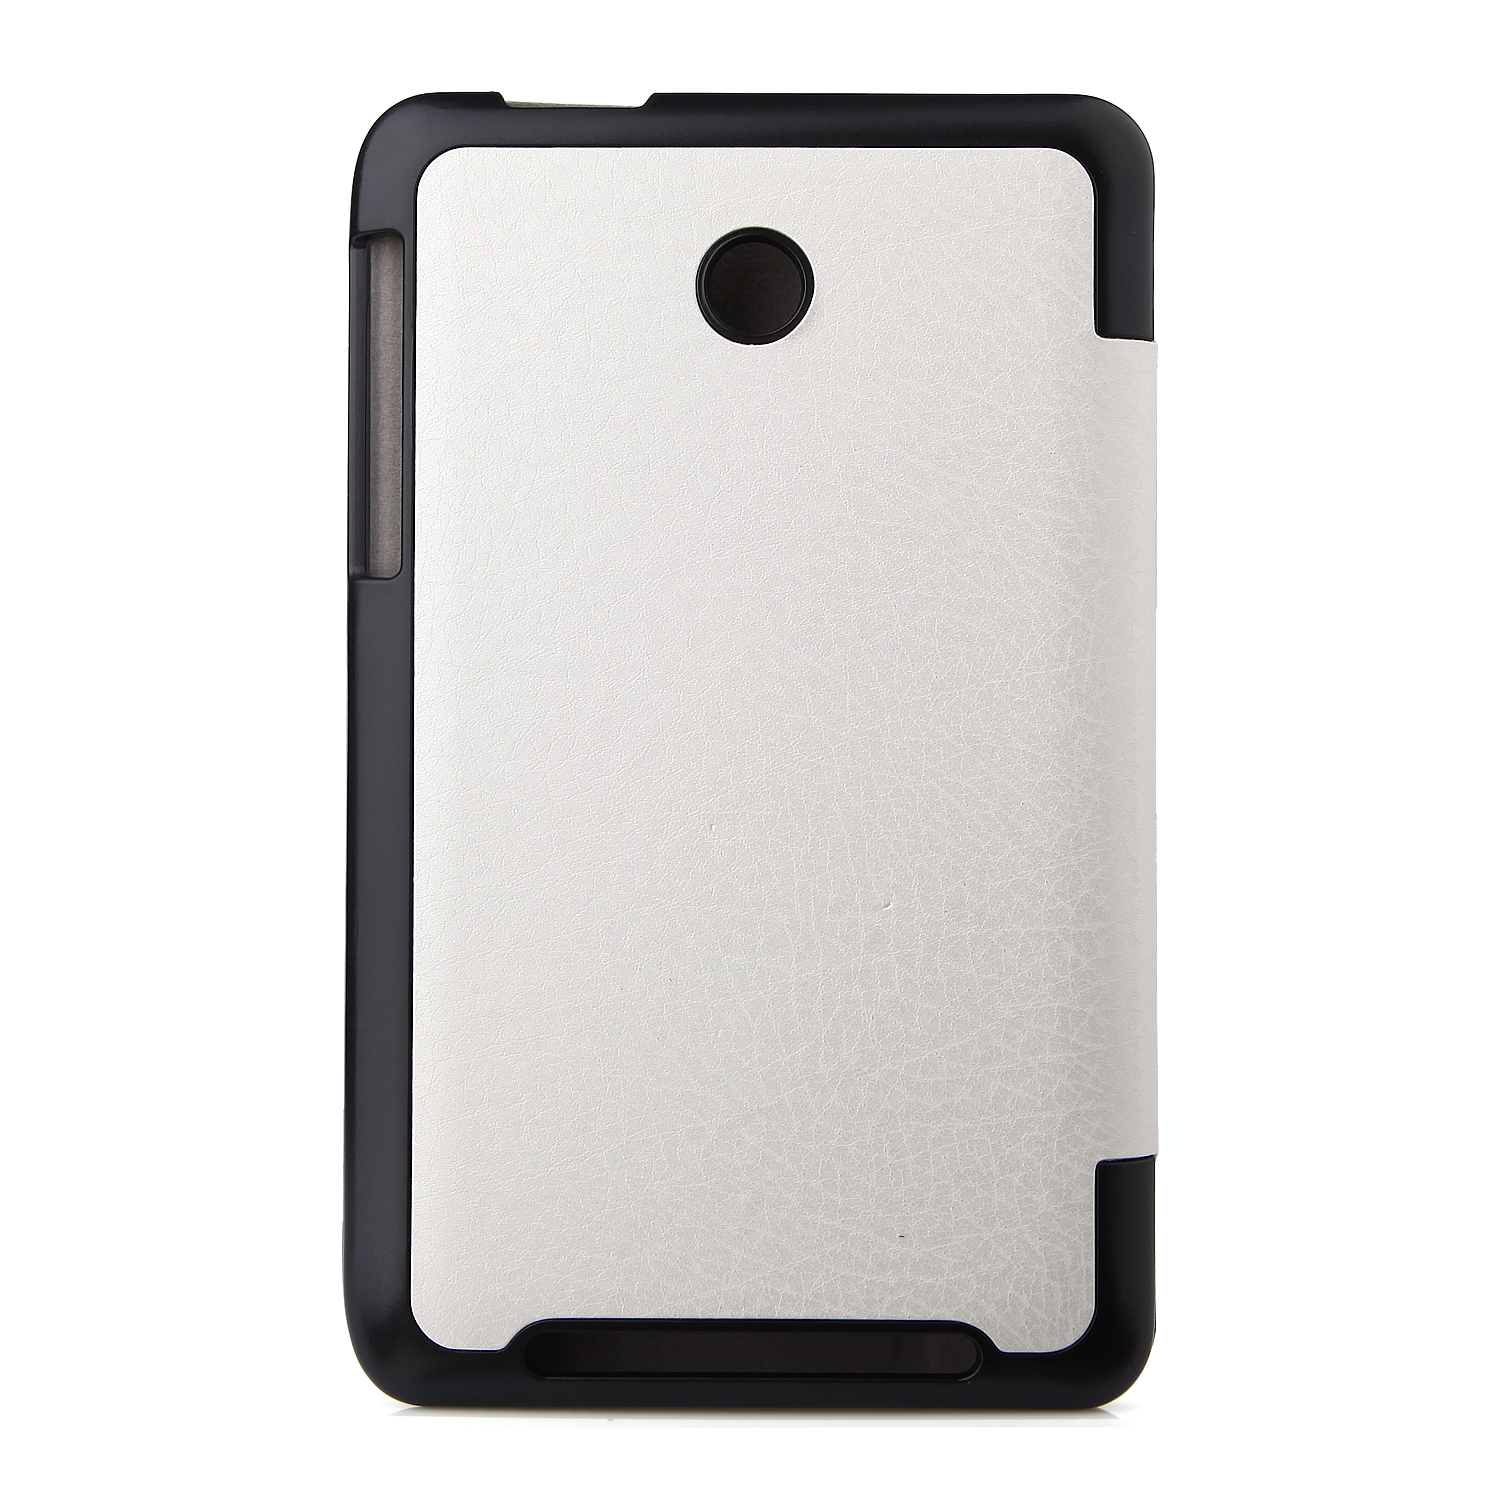 Protective PU Leather Stand Case Cover for Lenovo A3500 Tablet PC KP-69D White